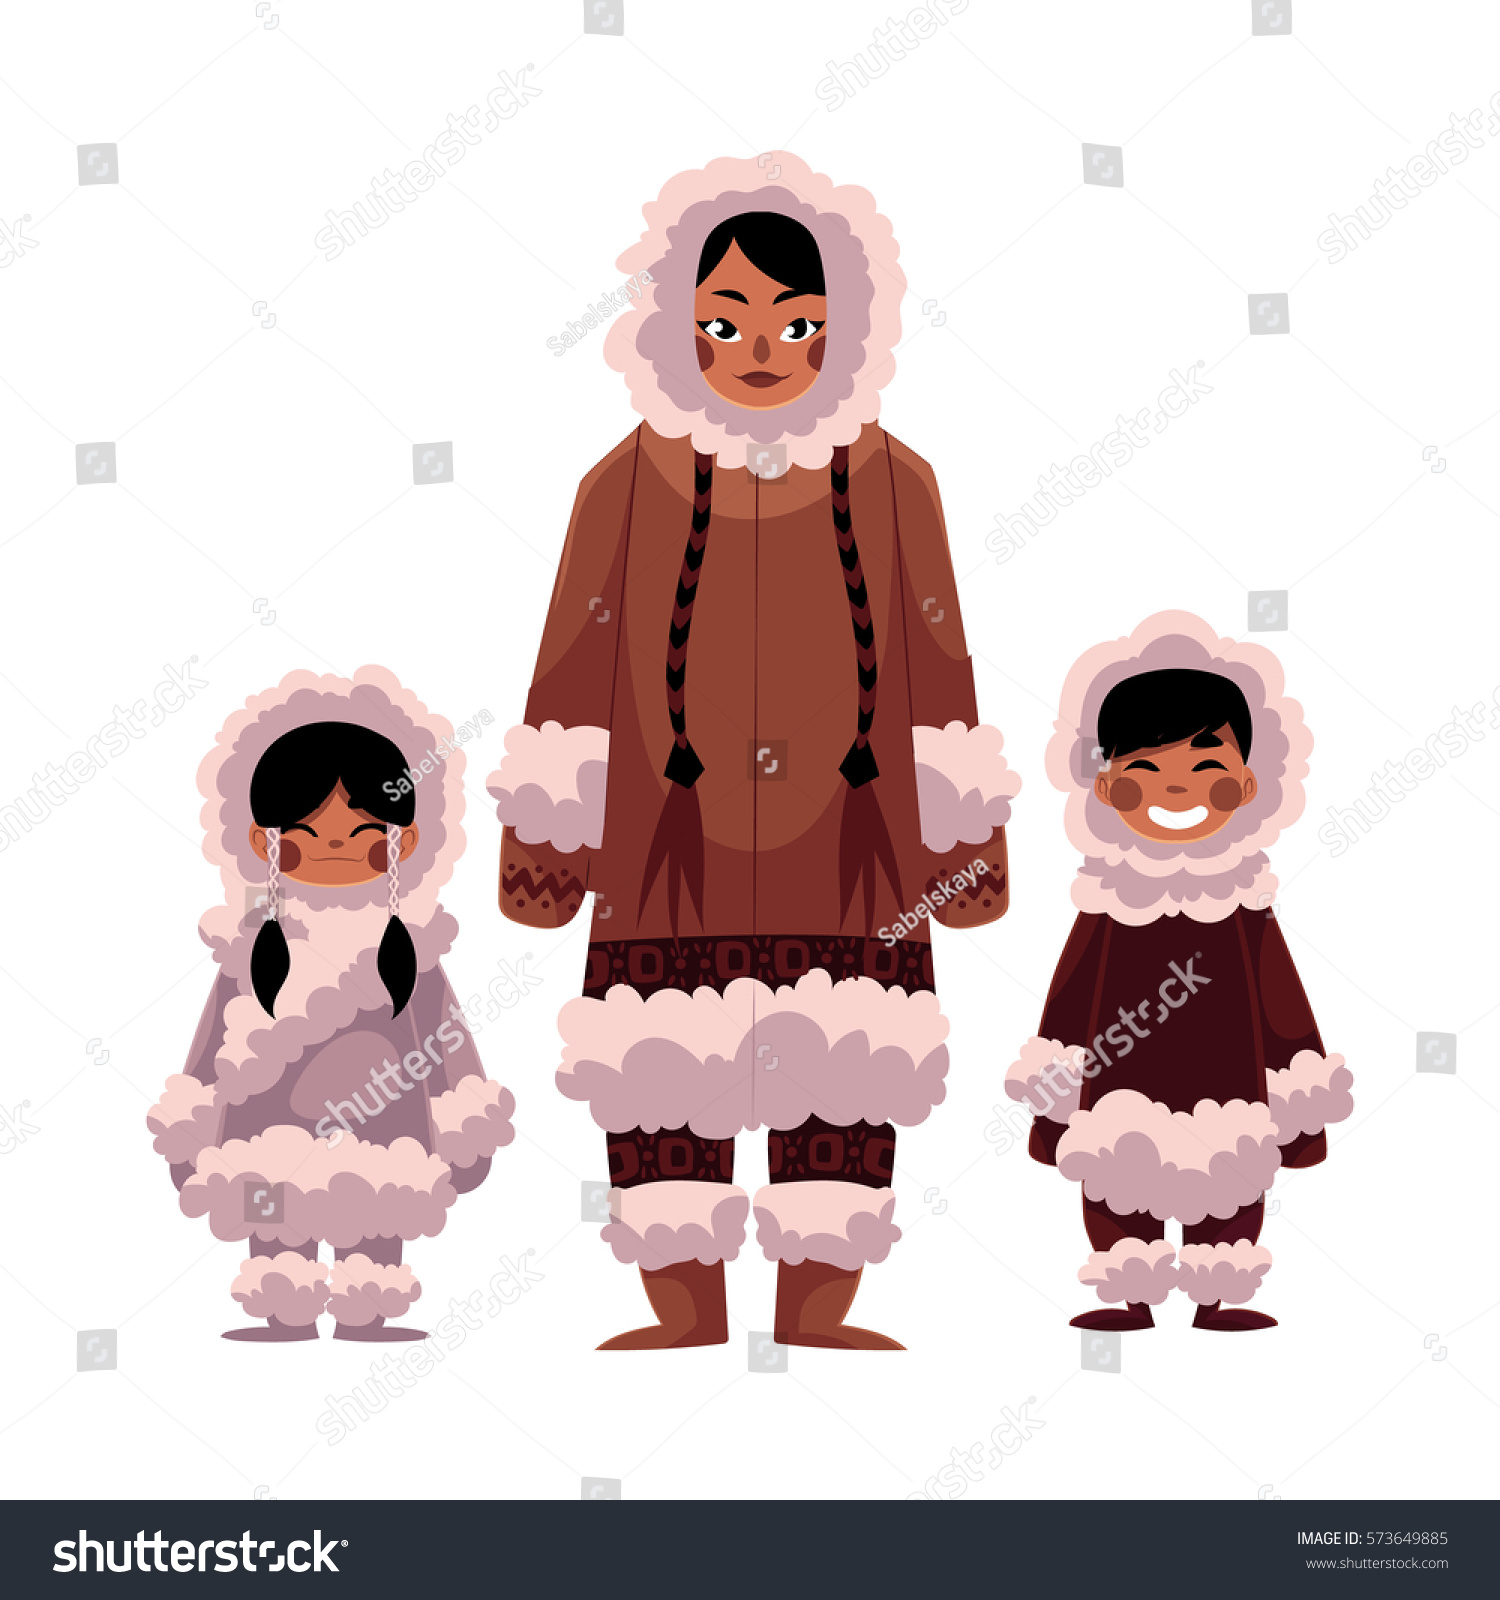 a2dd85ee1a0d Eskimo Inuit Woman Two Kids Boy Stock Vector (Royalty Free ...